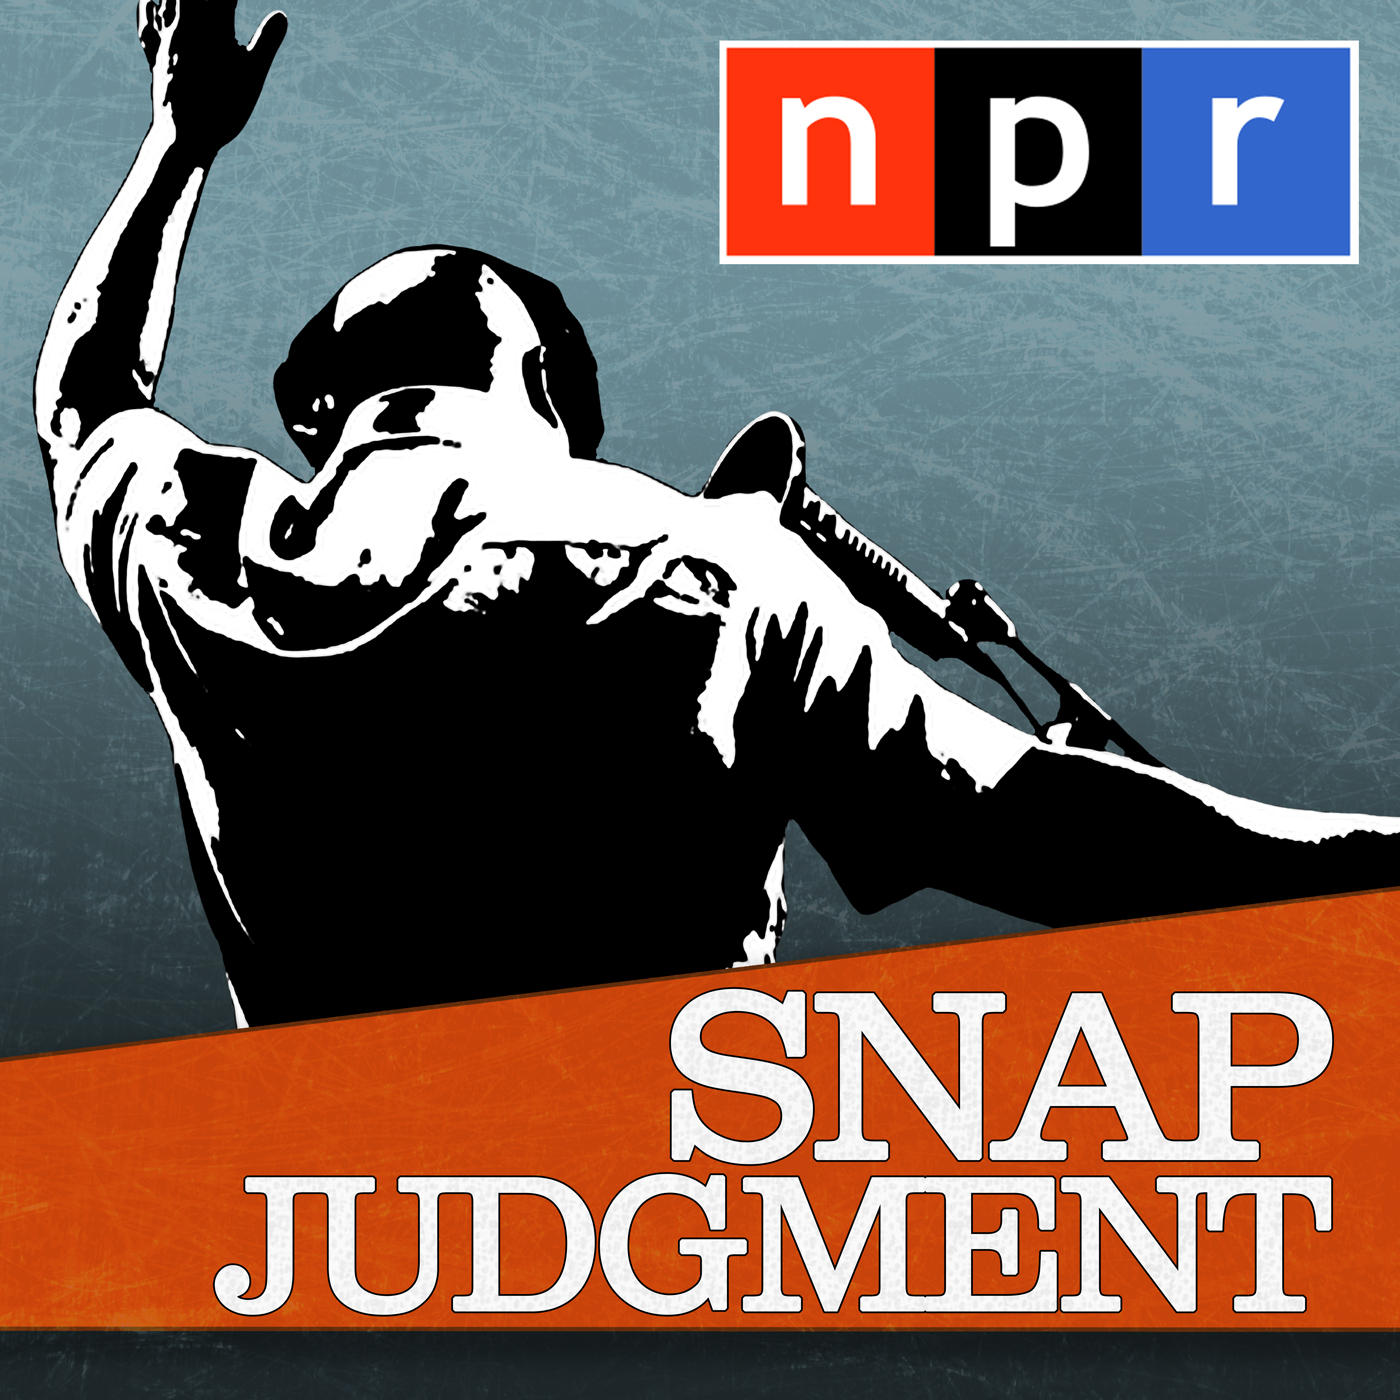 This story was featured on NPR's hit show Snap Judgement! - Listen to the segment below -